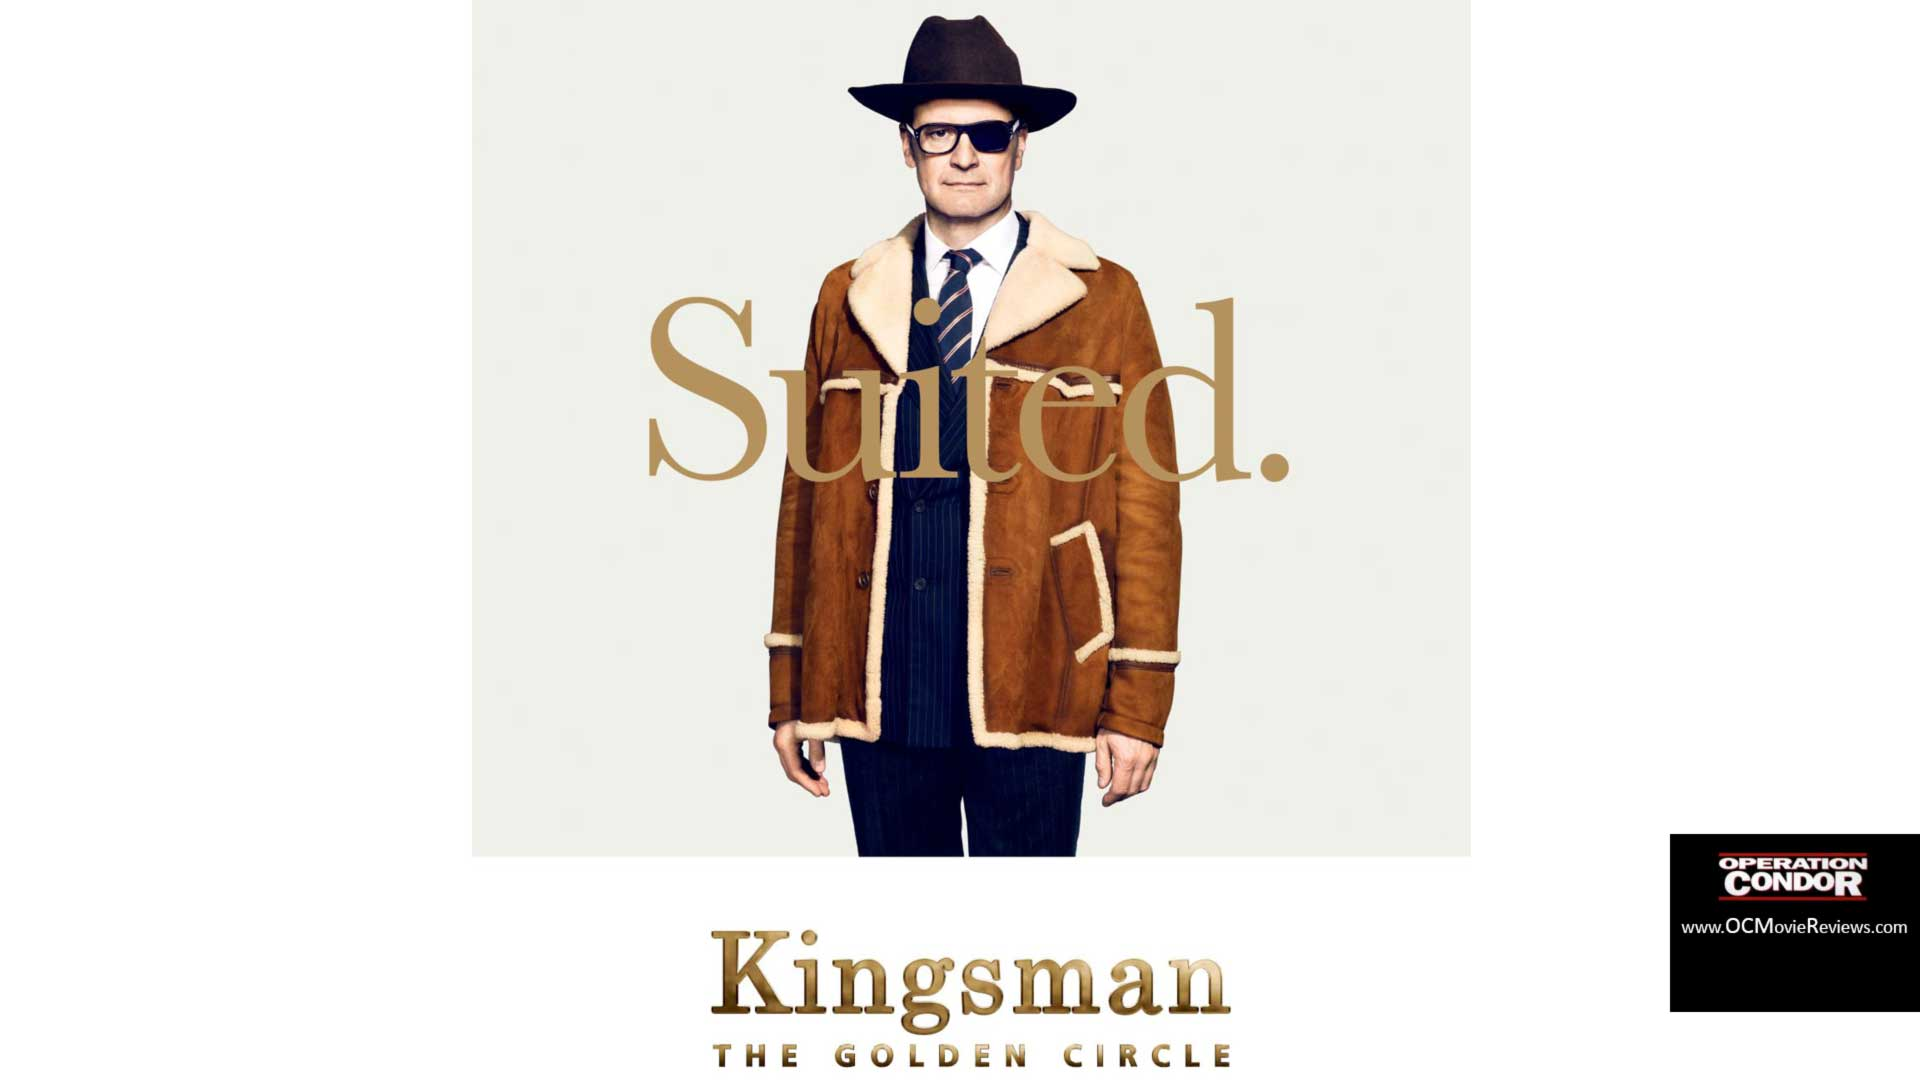 Kingsman: The Golden Circle IMAX Review - OC Movie Reviews - Movie Reviews, Movie News, Documentary Reviews, Short Films, Short Film Reviews, Trailers, Movie Trailers, Interviews, film reviews, film news, hollywood, indie films, documentaries